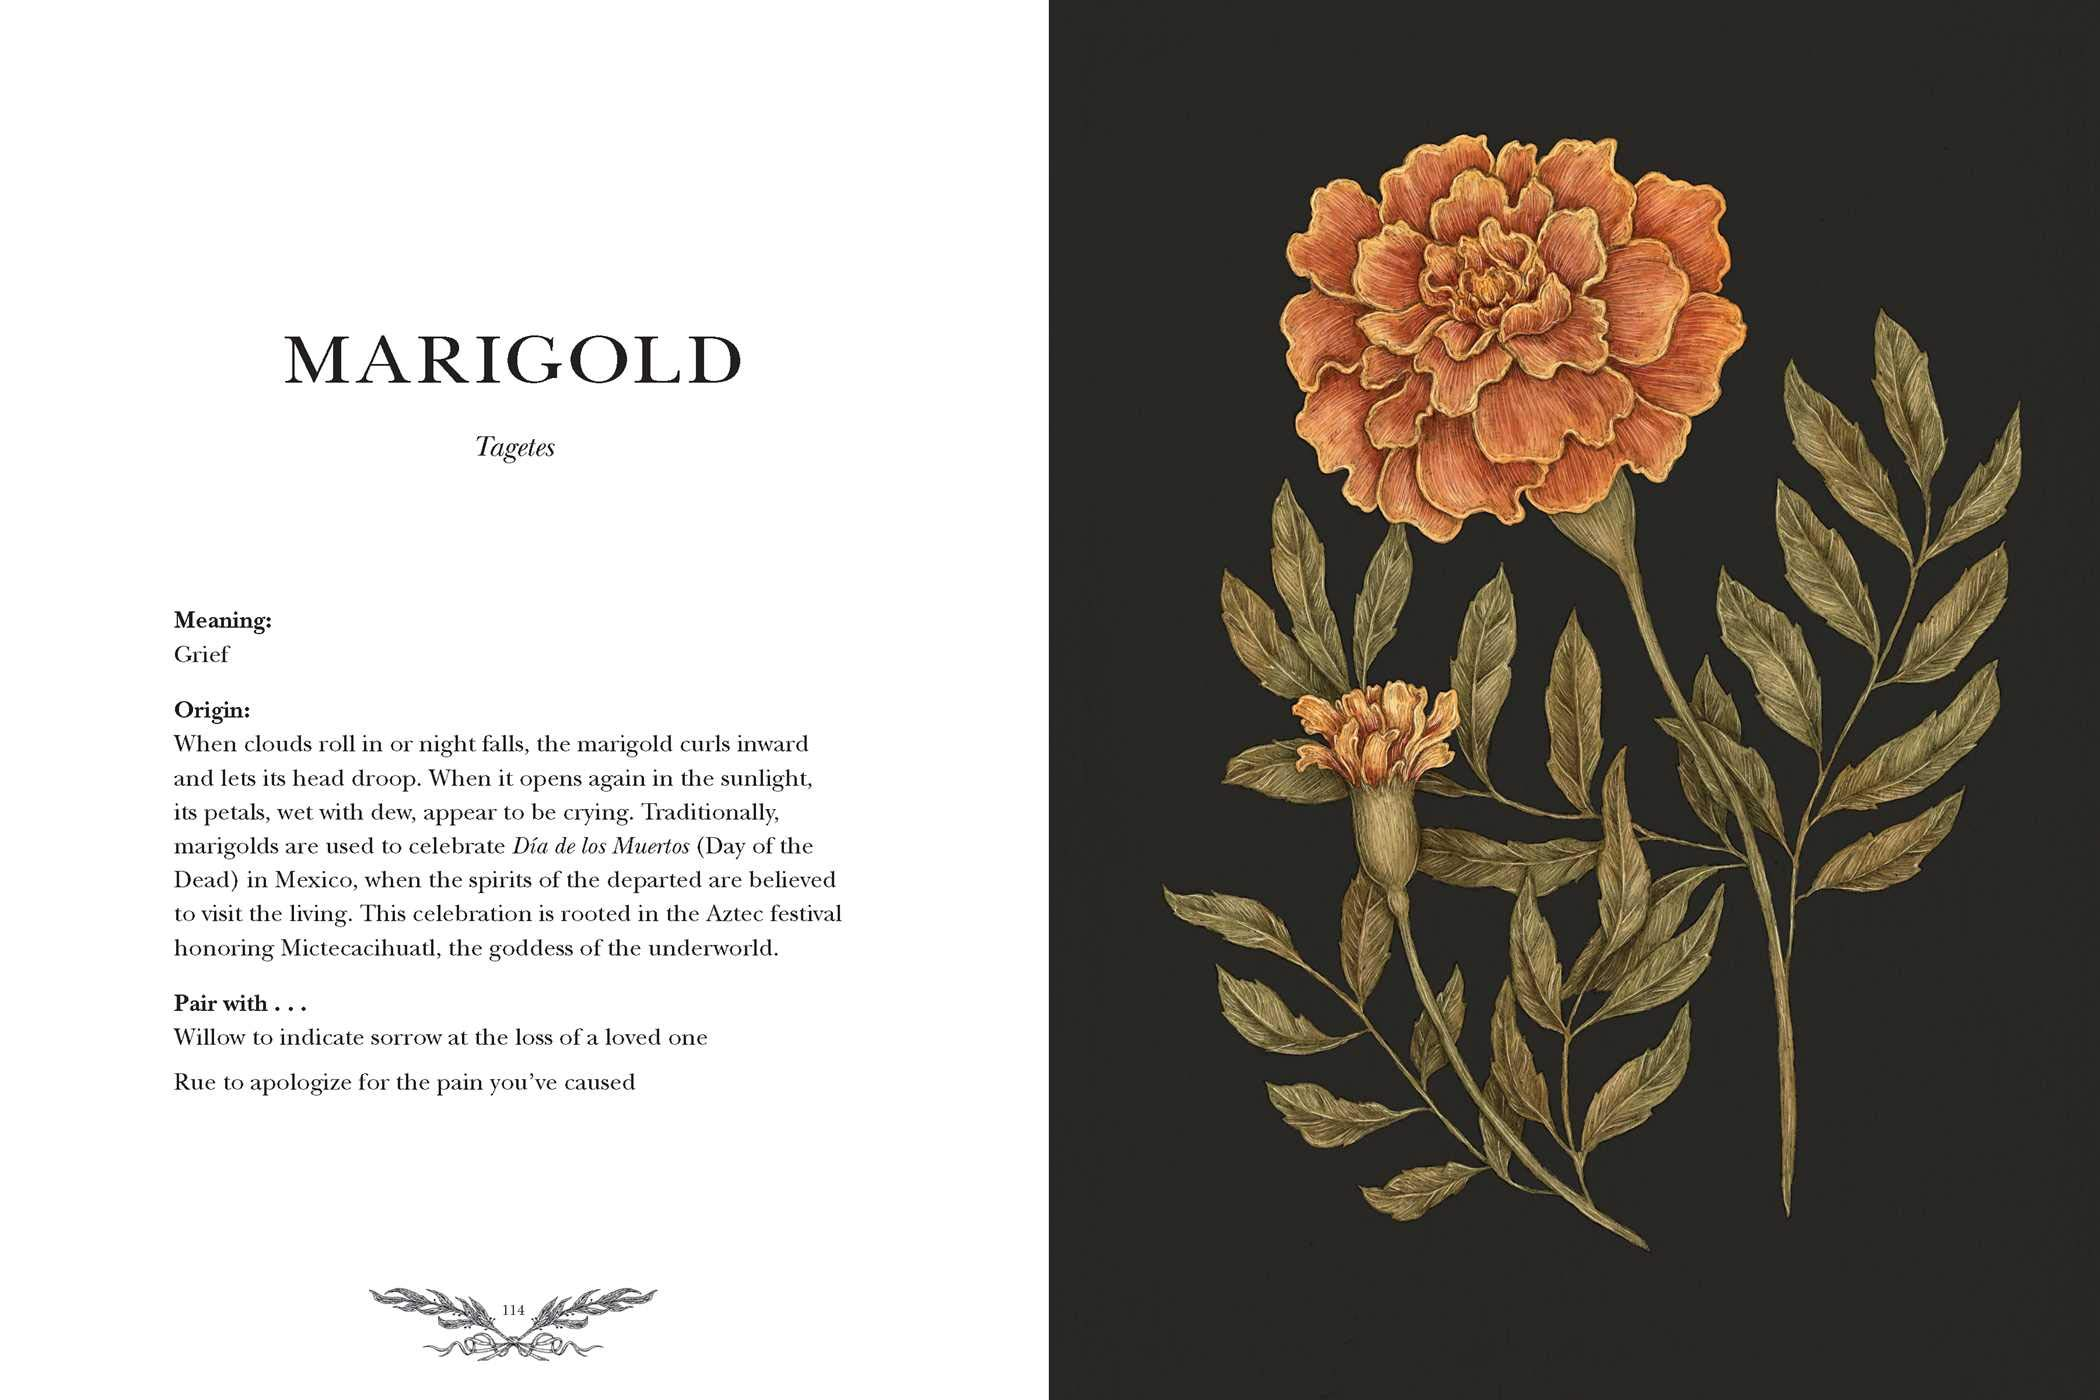 MARIGOLD. Tagetes Meaning: Grief Origin: When clouds roll in or night falls, the marigold curls inward and lets its head droop. When it opens again in the sunlight, its petals, wet with dew, appear to be crying. Traditionally, marigolds are used to celebrate Día de los Muertos (Day of the Dead) in Mexico, when the spirits of the departed are believed to visit the living.